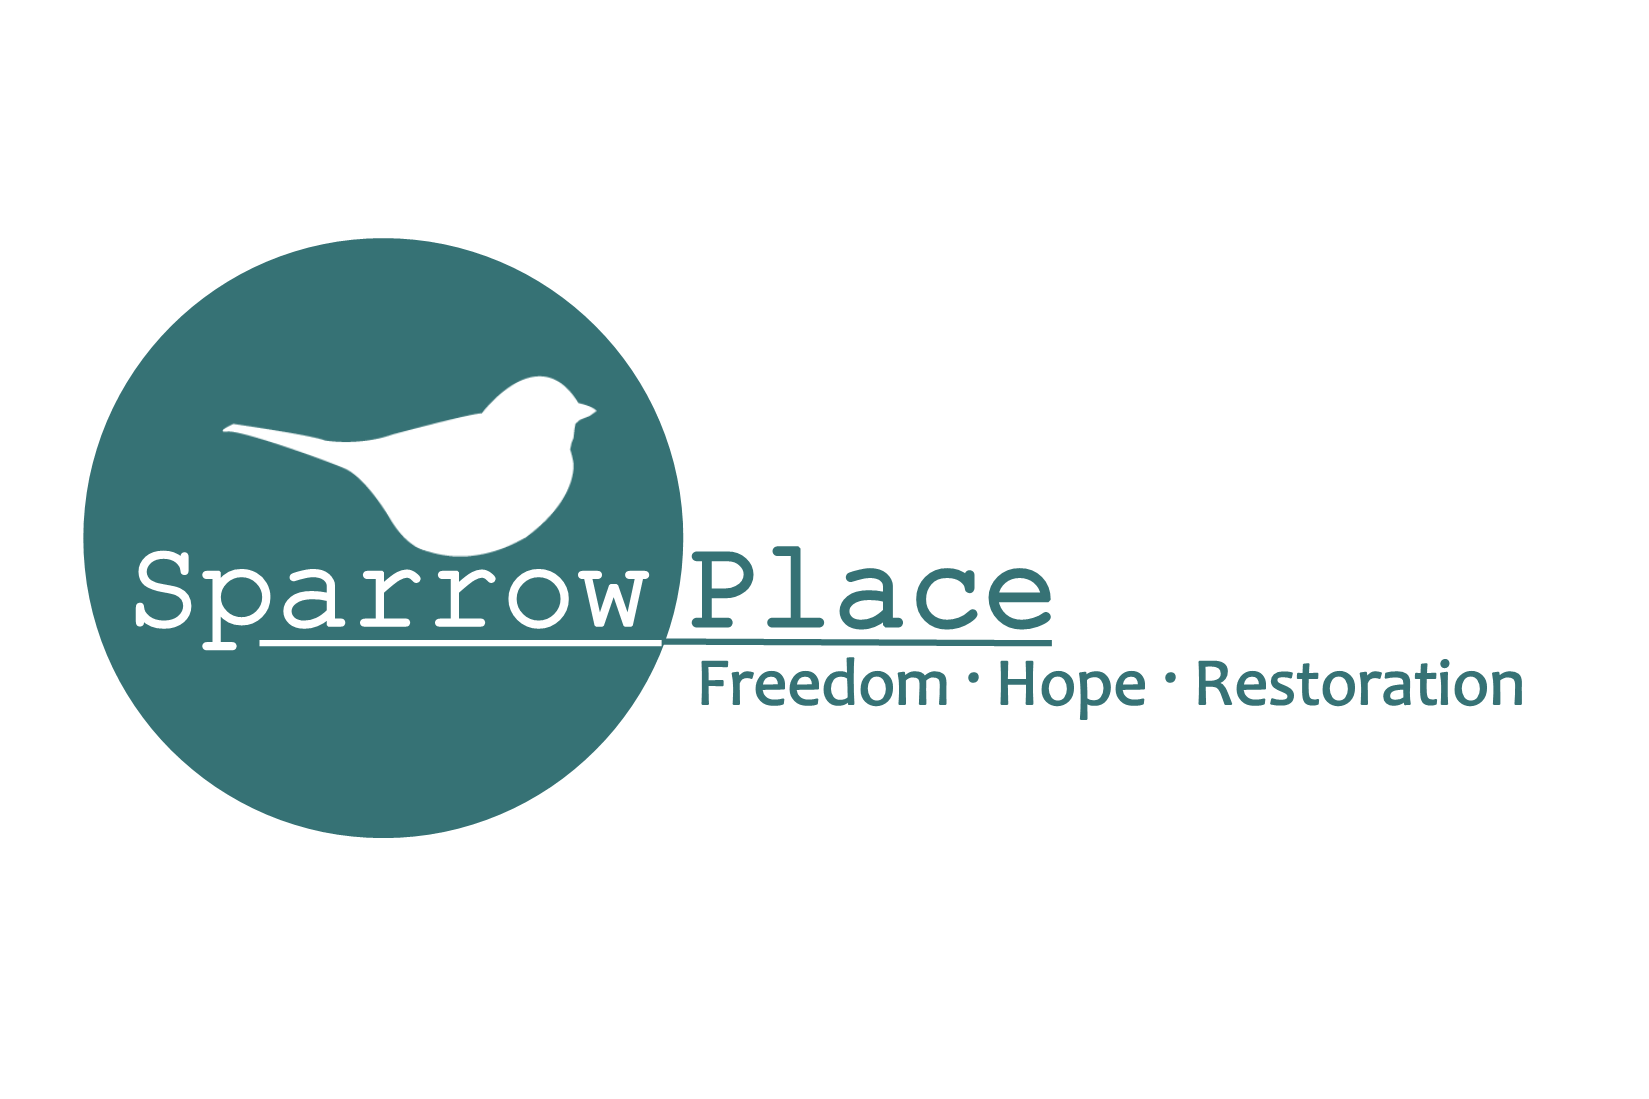 Shout Out! - Thank you, Ben Williamson, college student and all around amazing guy, for the design of our logo. We LOVE it!Sparrow Place is a non-profit based on volunteerism and you are a perfect example of a community member joining us to offer their talent and abilities to help move this vision forward.Who's next to jump in? If you believe in our goal to help survivors walk a restorative path to freedom, reach out and contact us!